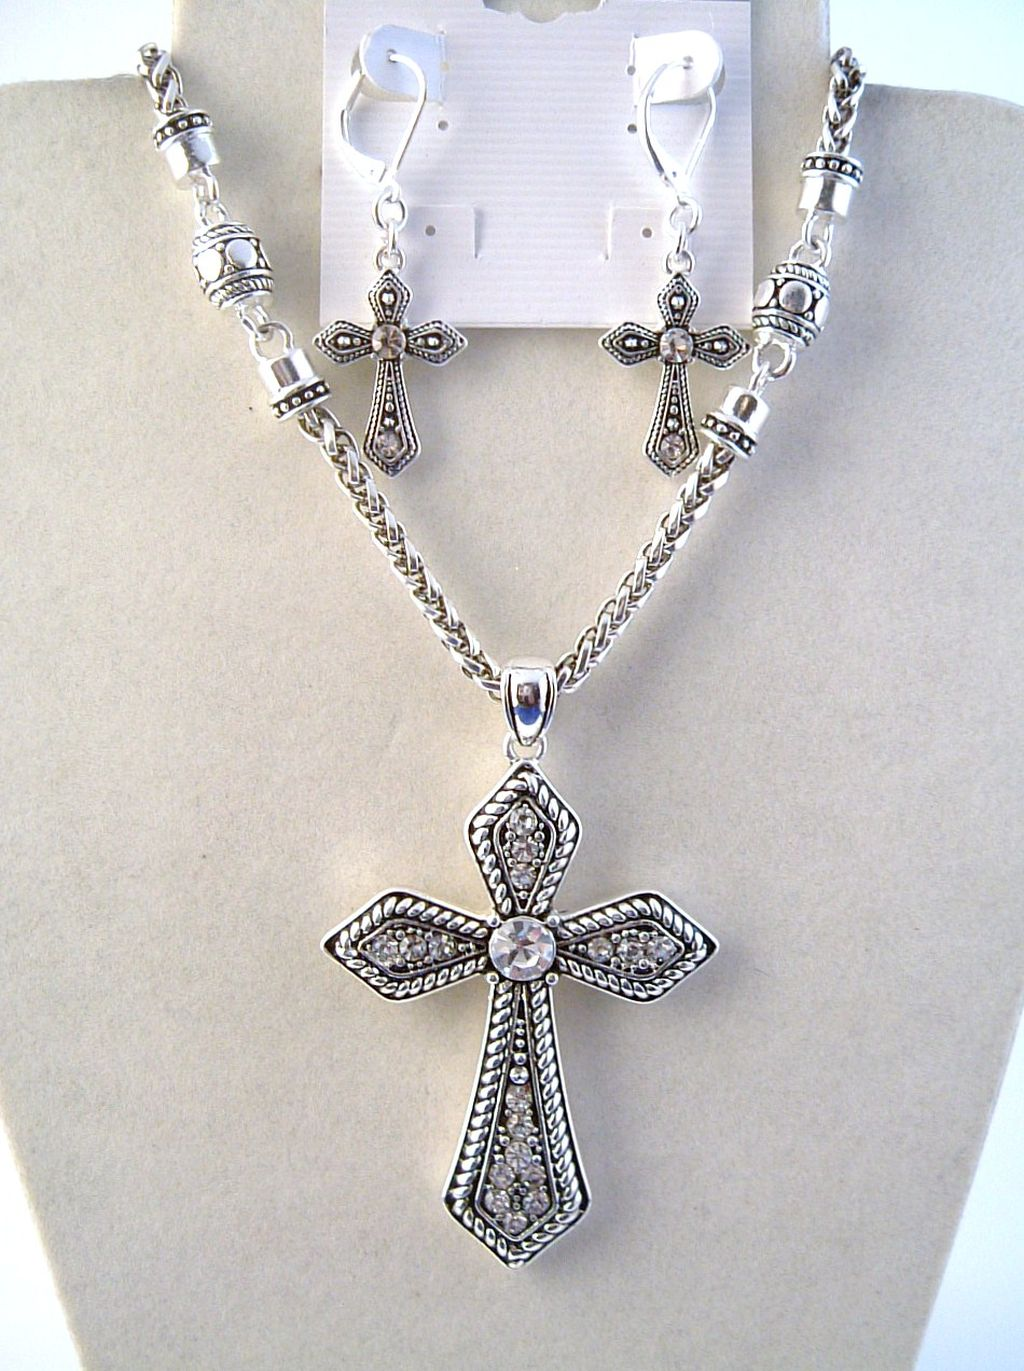 Vintage Cross Pendant CZ Diamonds Necklace Earrings Jewelry Set